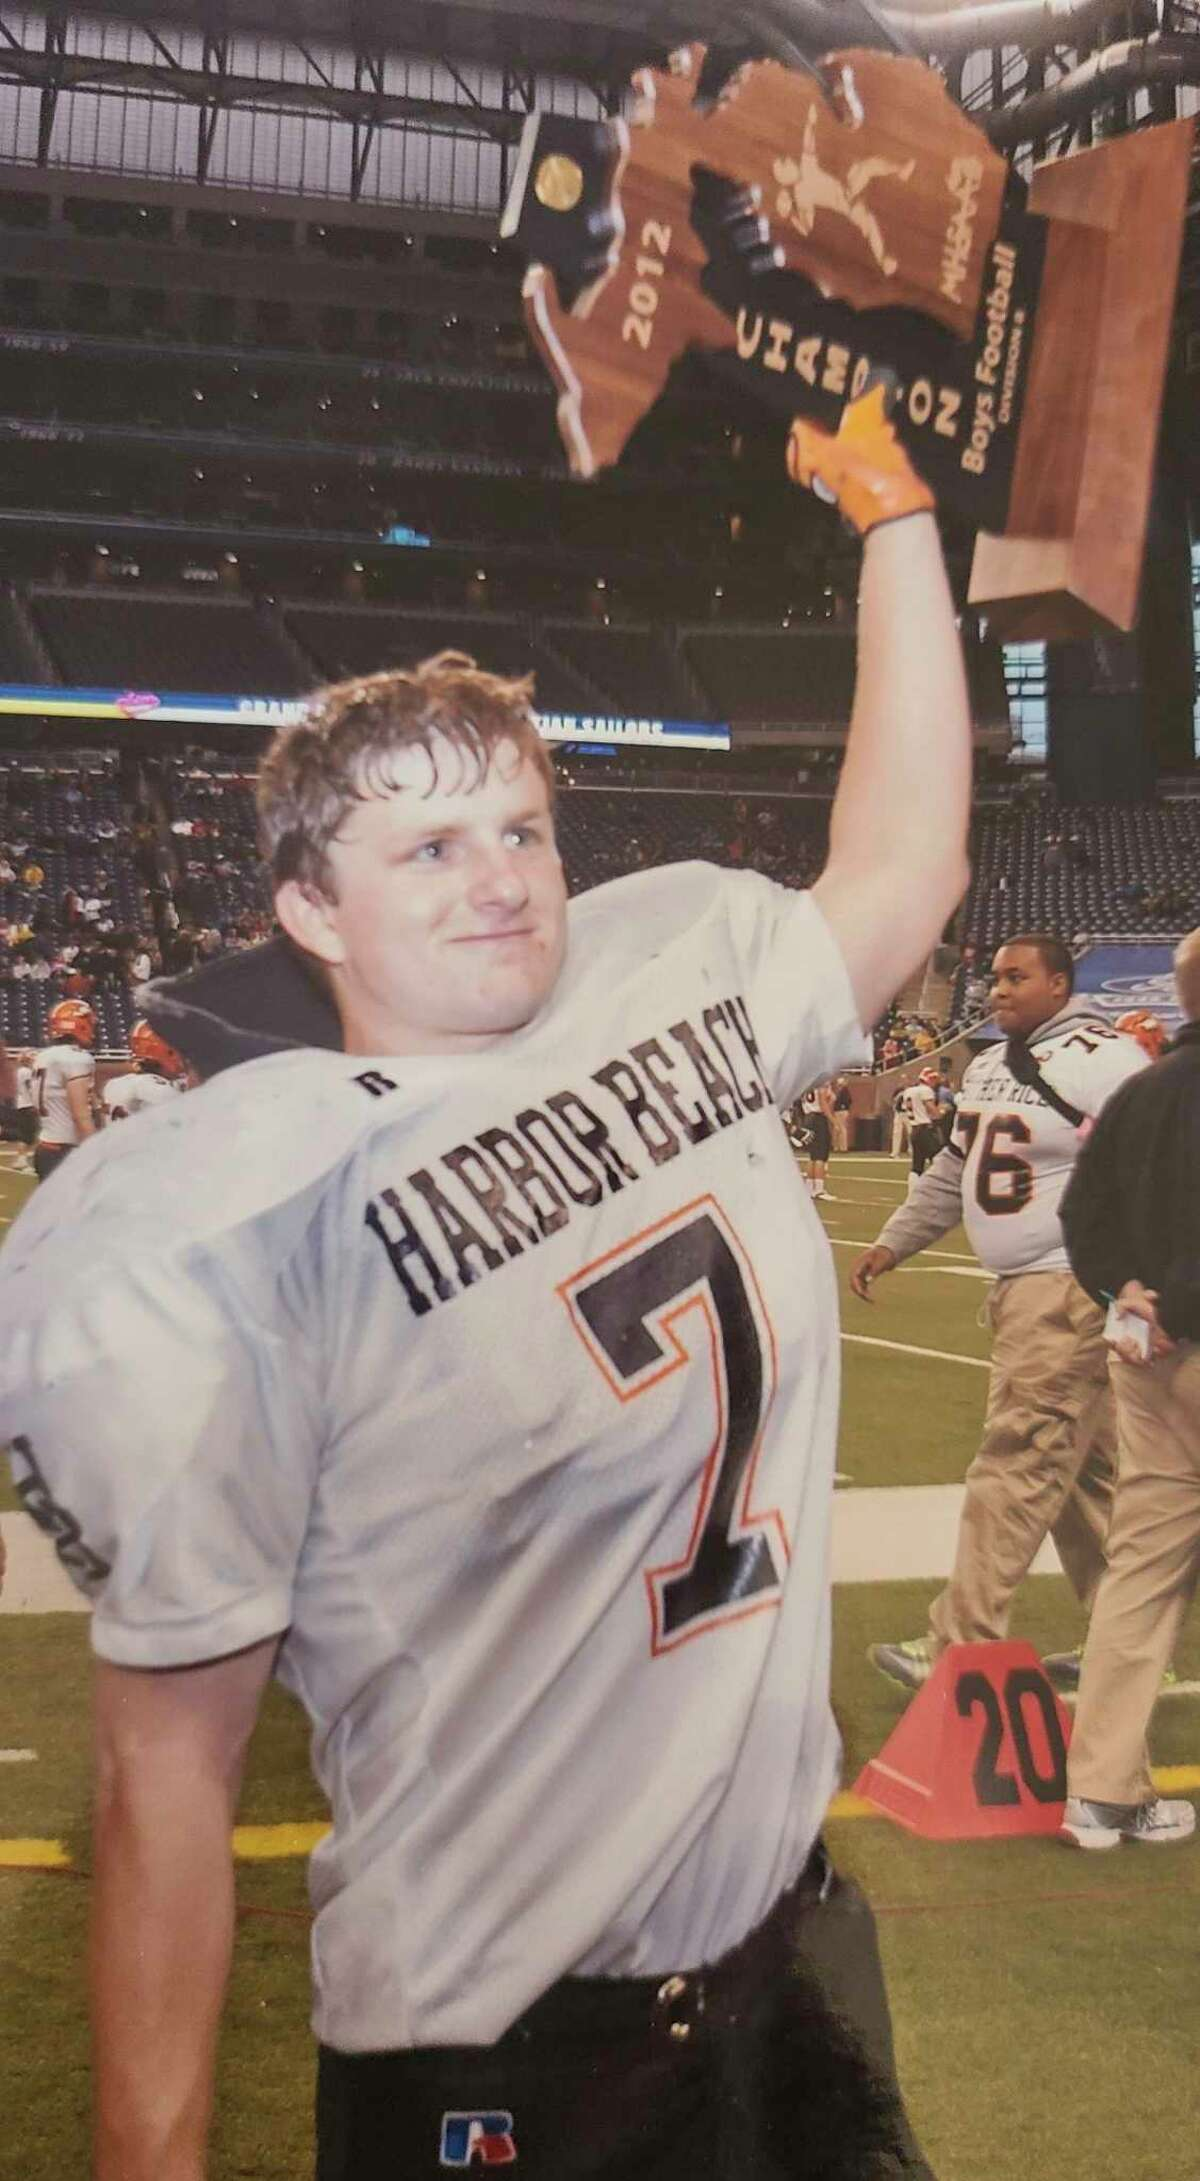 Derek Pfaff raises Harbor Beach's 2012 state football championship trophy at Ford Field. Derek was an all-state running back for the Pirates. The Pfaff family is working to raise $1 million to fund the cost of a face transplant operation for Derek, who was injured in 2014 he attempted to take his own life. (Pfaff Family/Courtesy Photo)